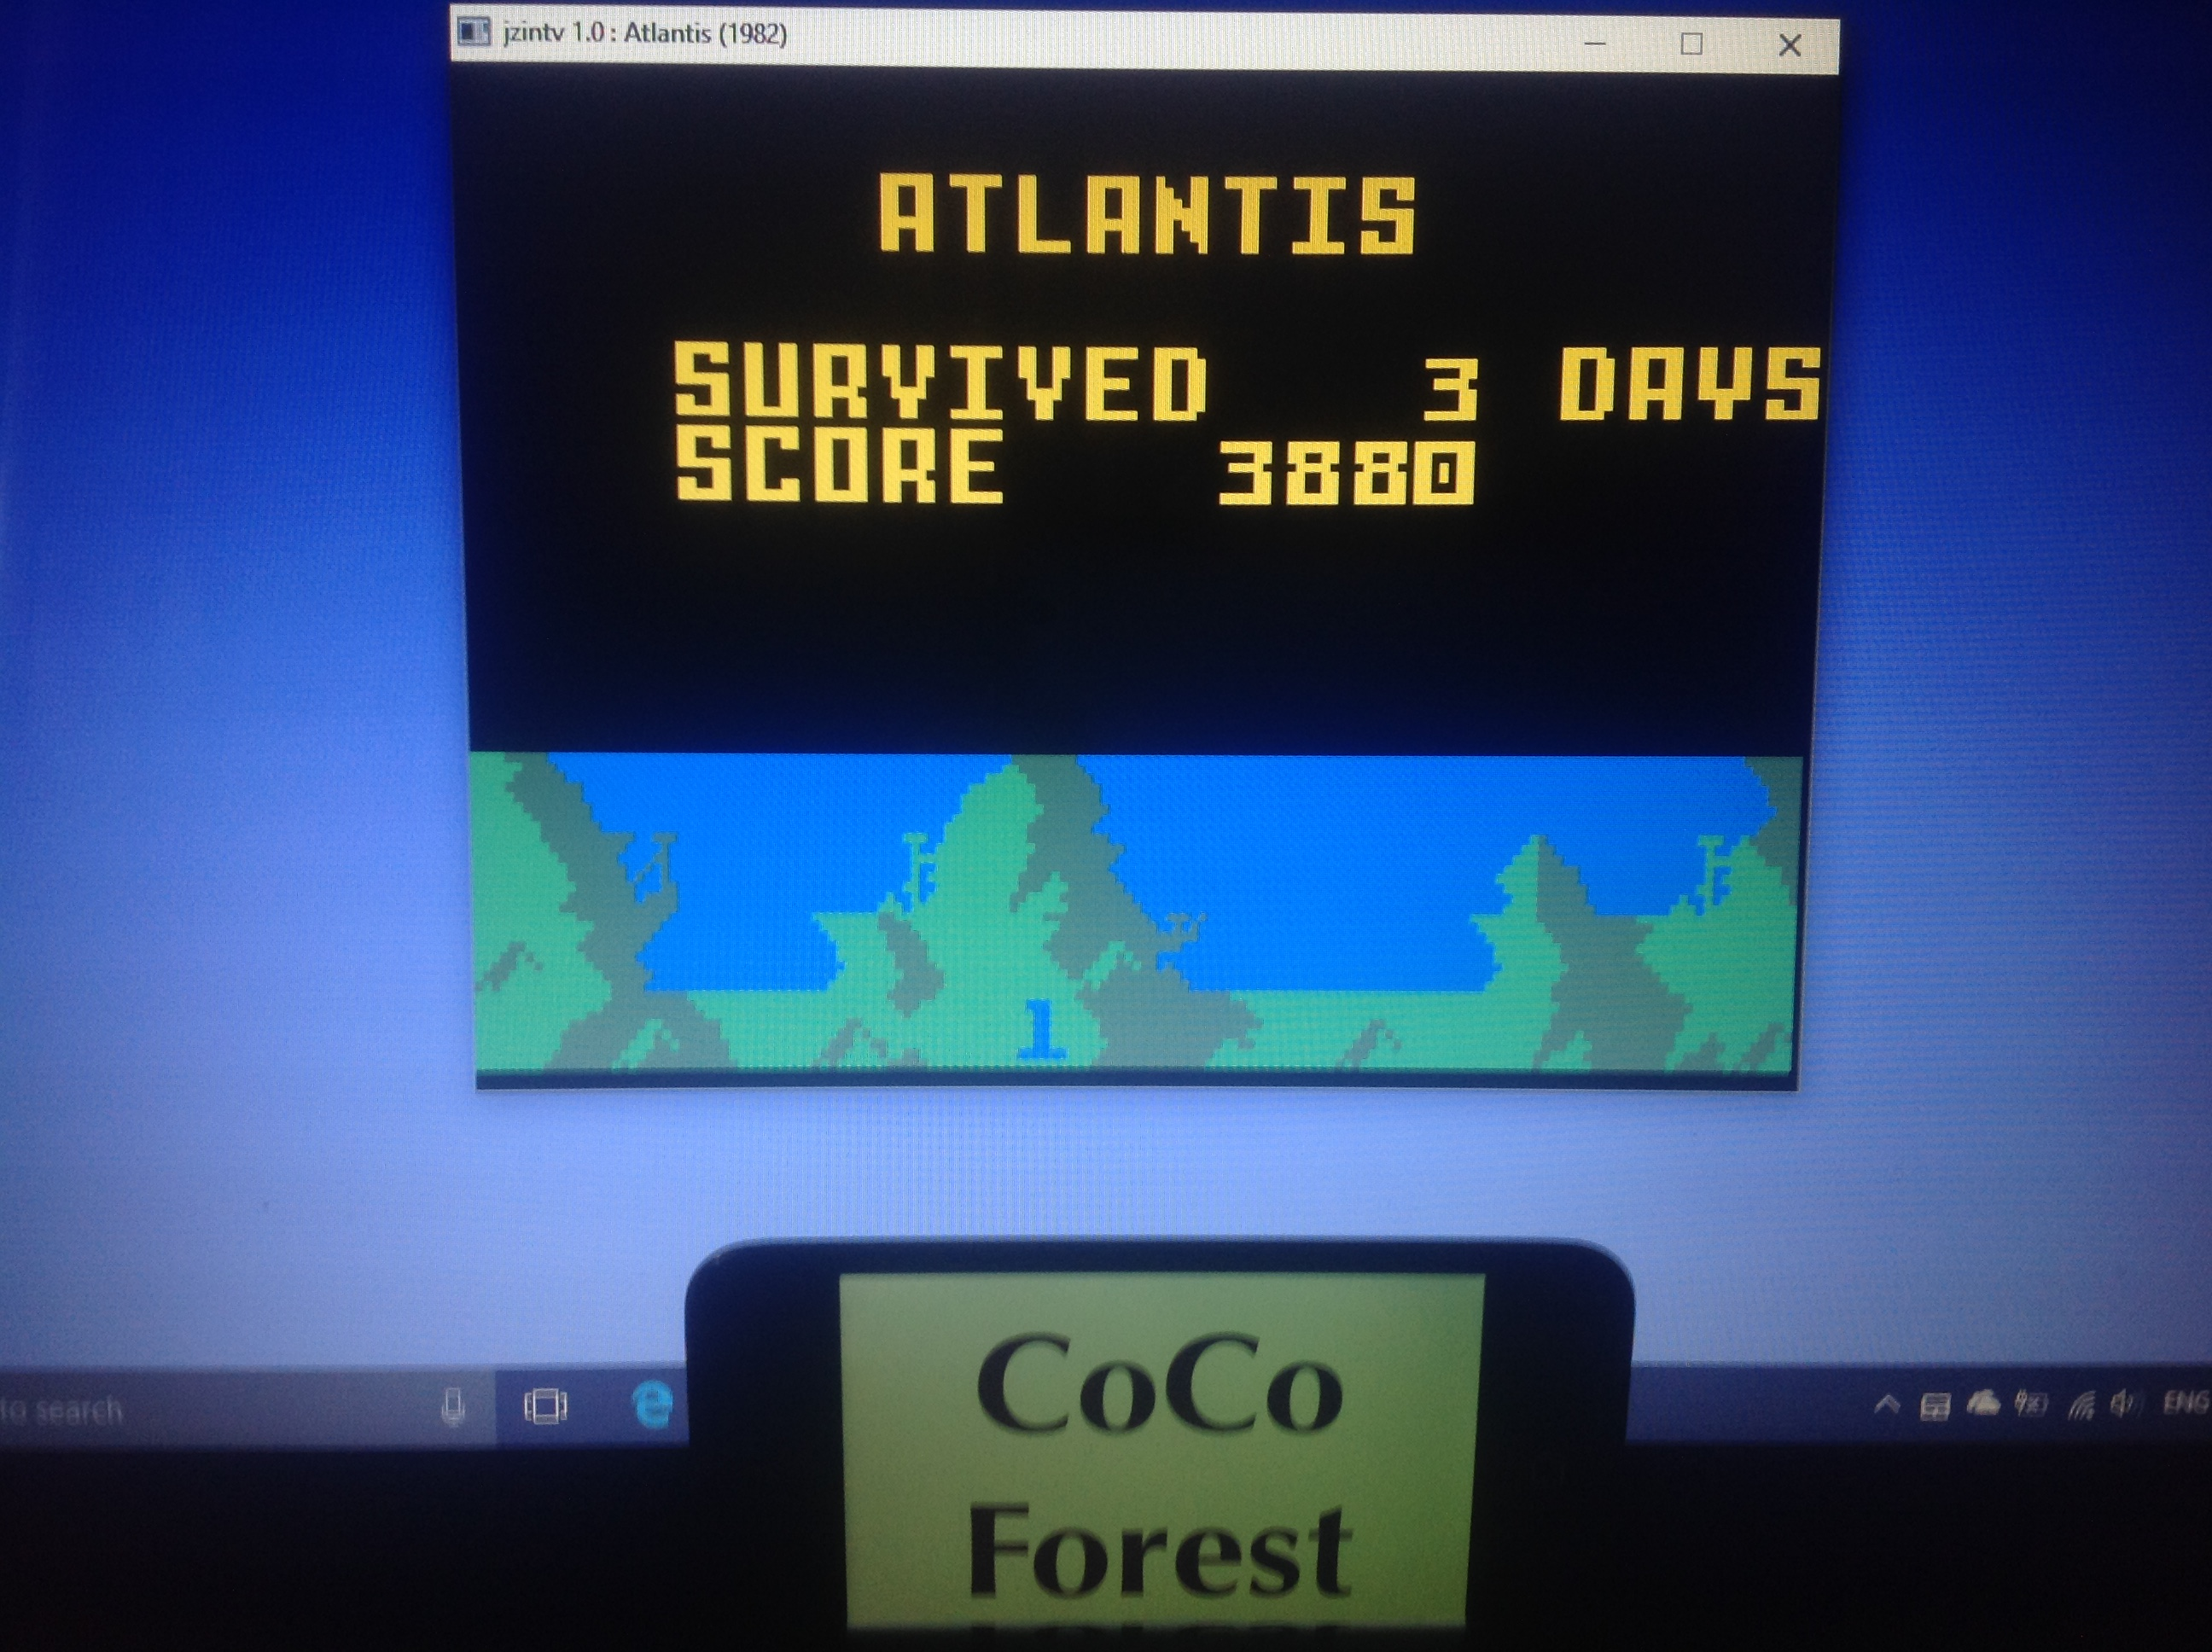 CoCoForest: Atlantis: Easy (Intellivision Emulated) 3,880 points on 2018-01-28 03:16:16